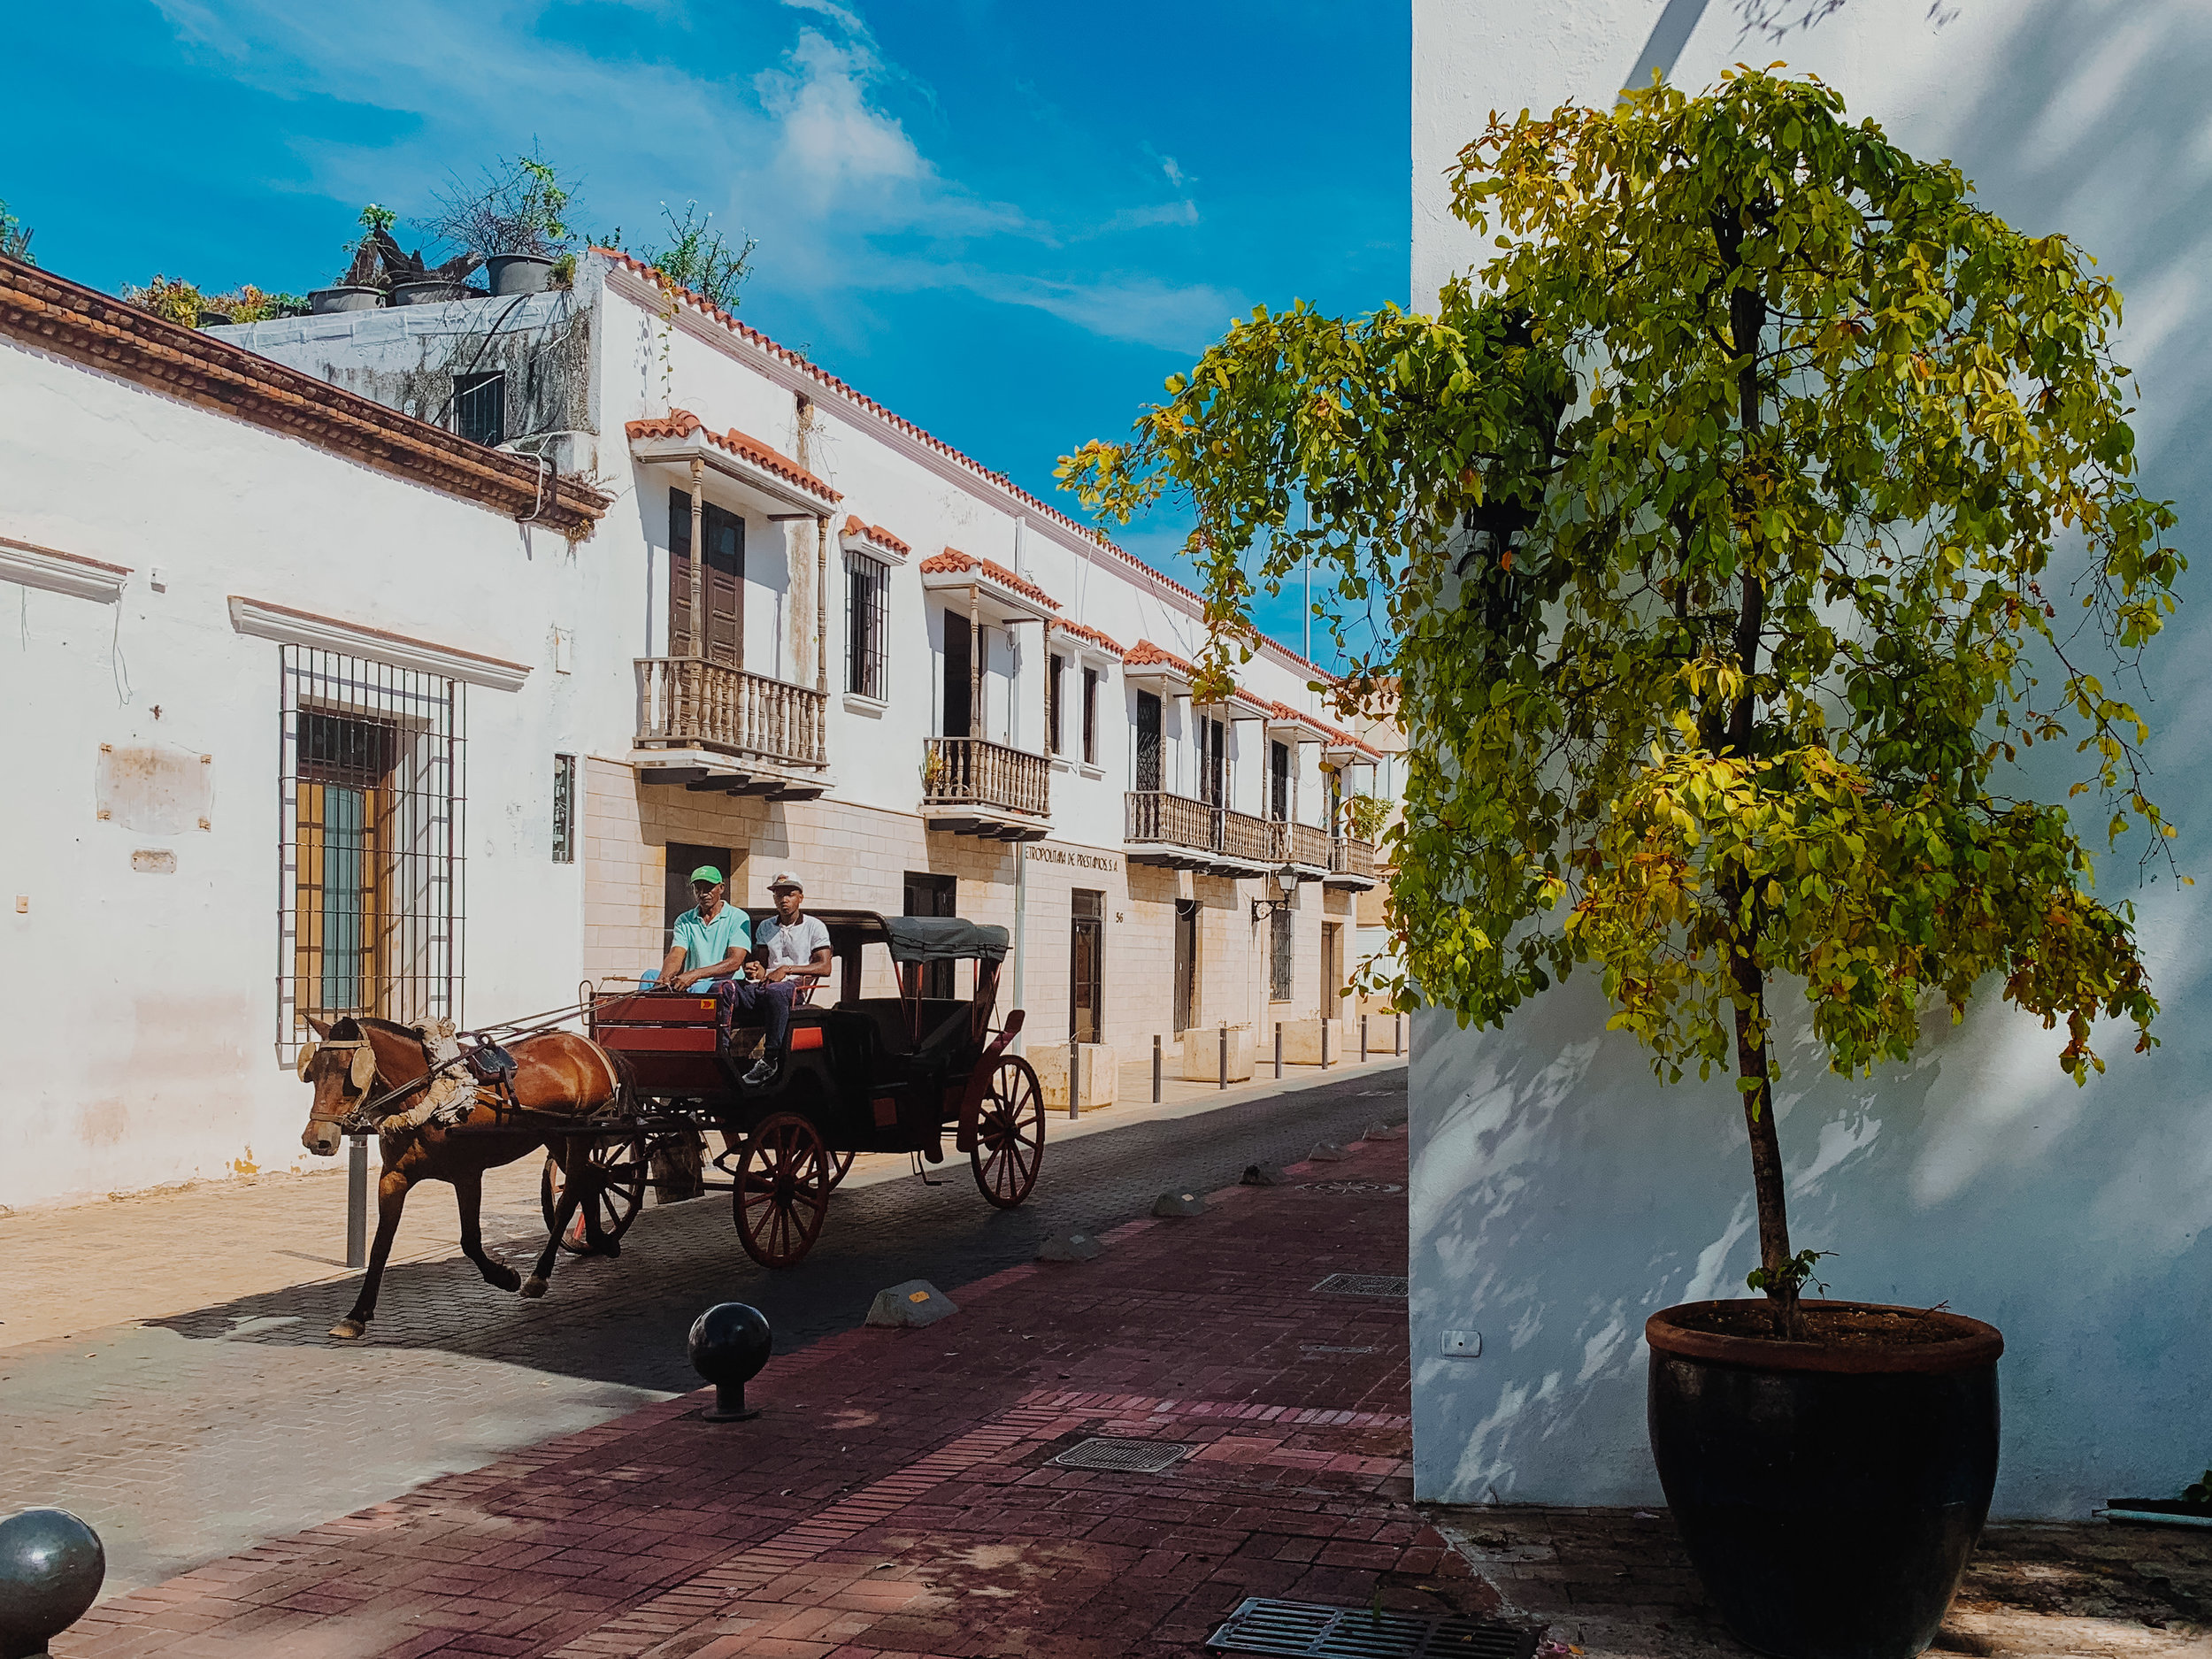 Two young men ride a red horse carriage down the empty streets of Zona Colonial, Santo Domingo